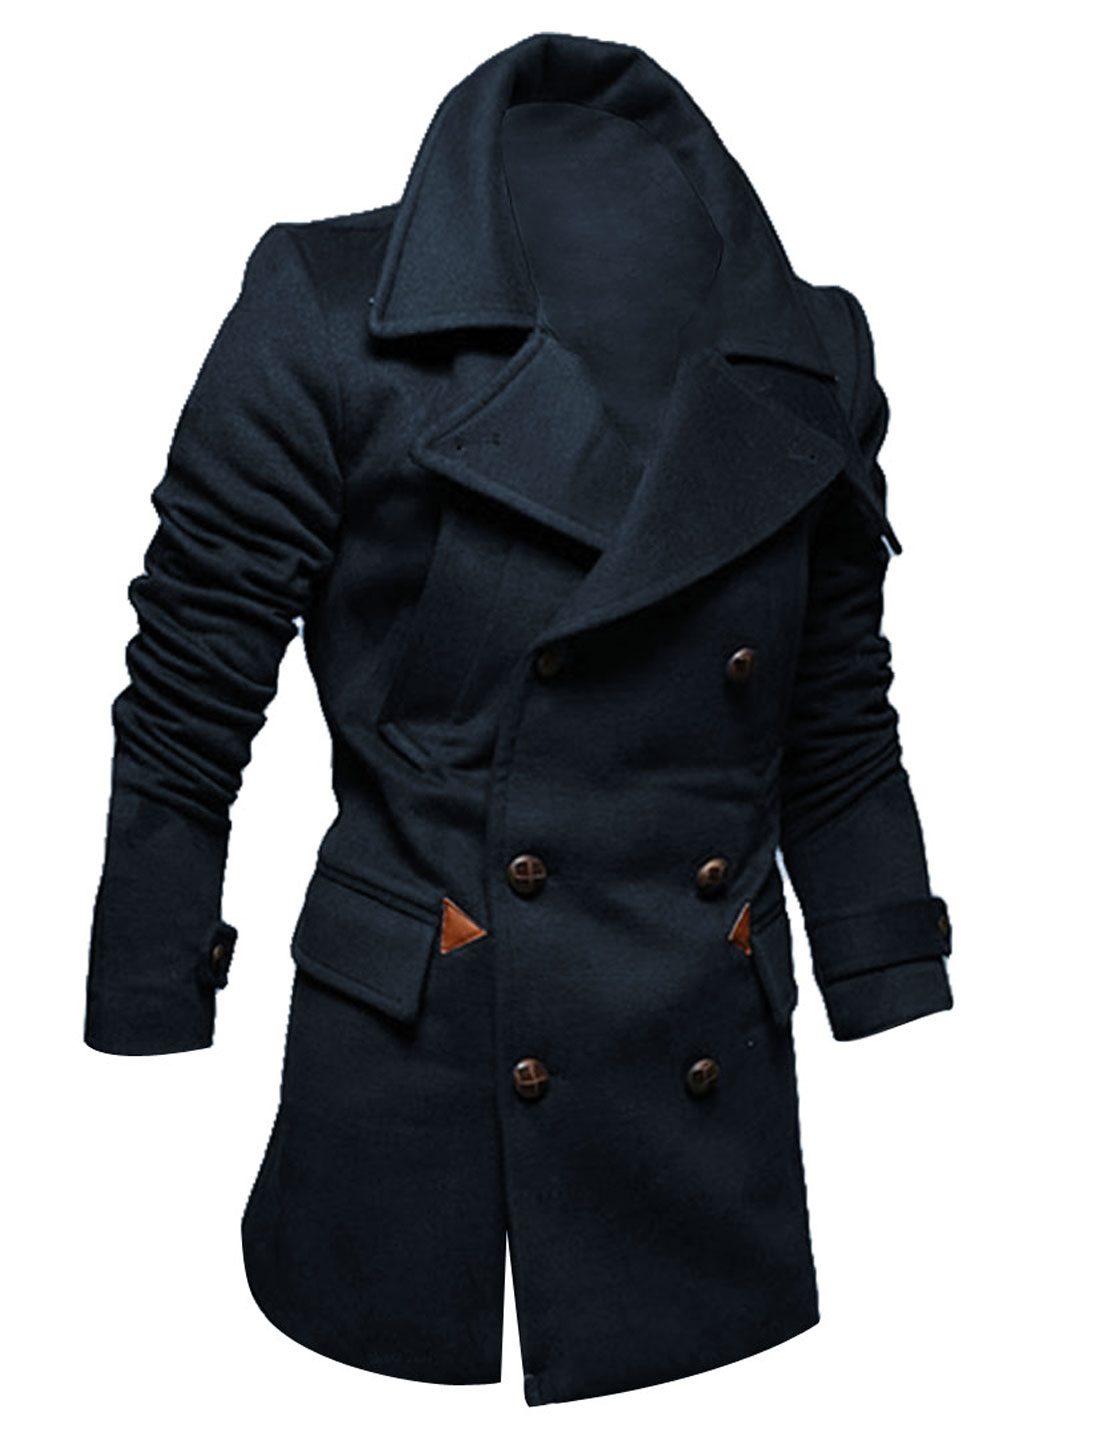 Man NEW Convertible Collar Two Pocket Navy Blue Overcoat M